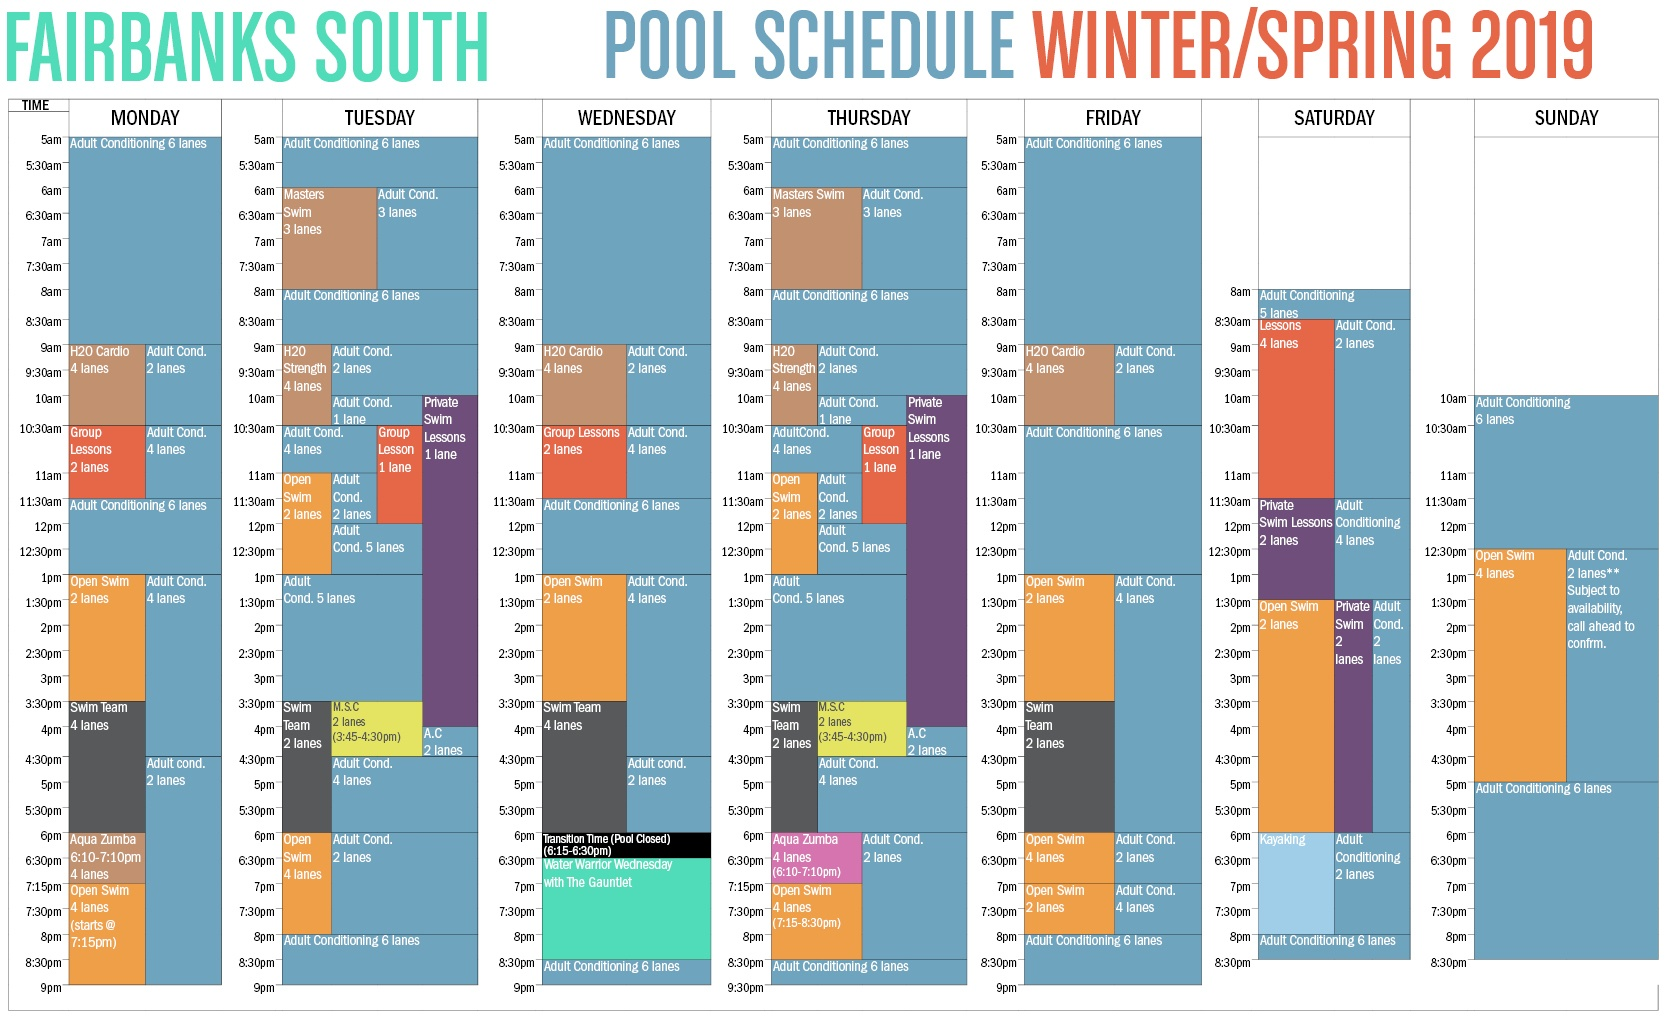 2018 Fairbanks South Pool Schedule